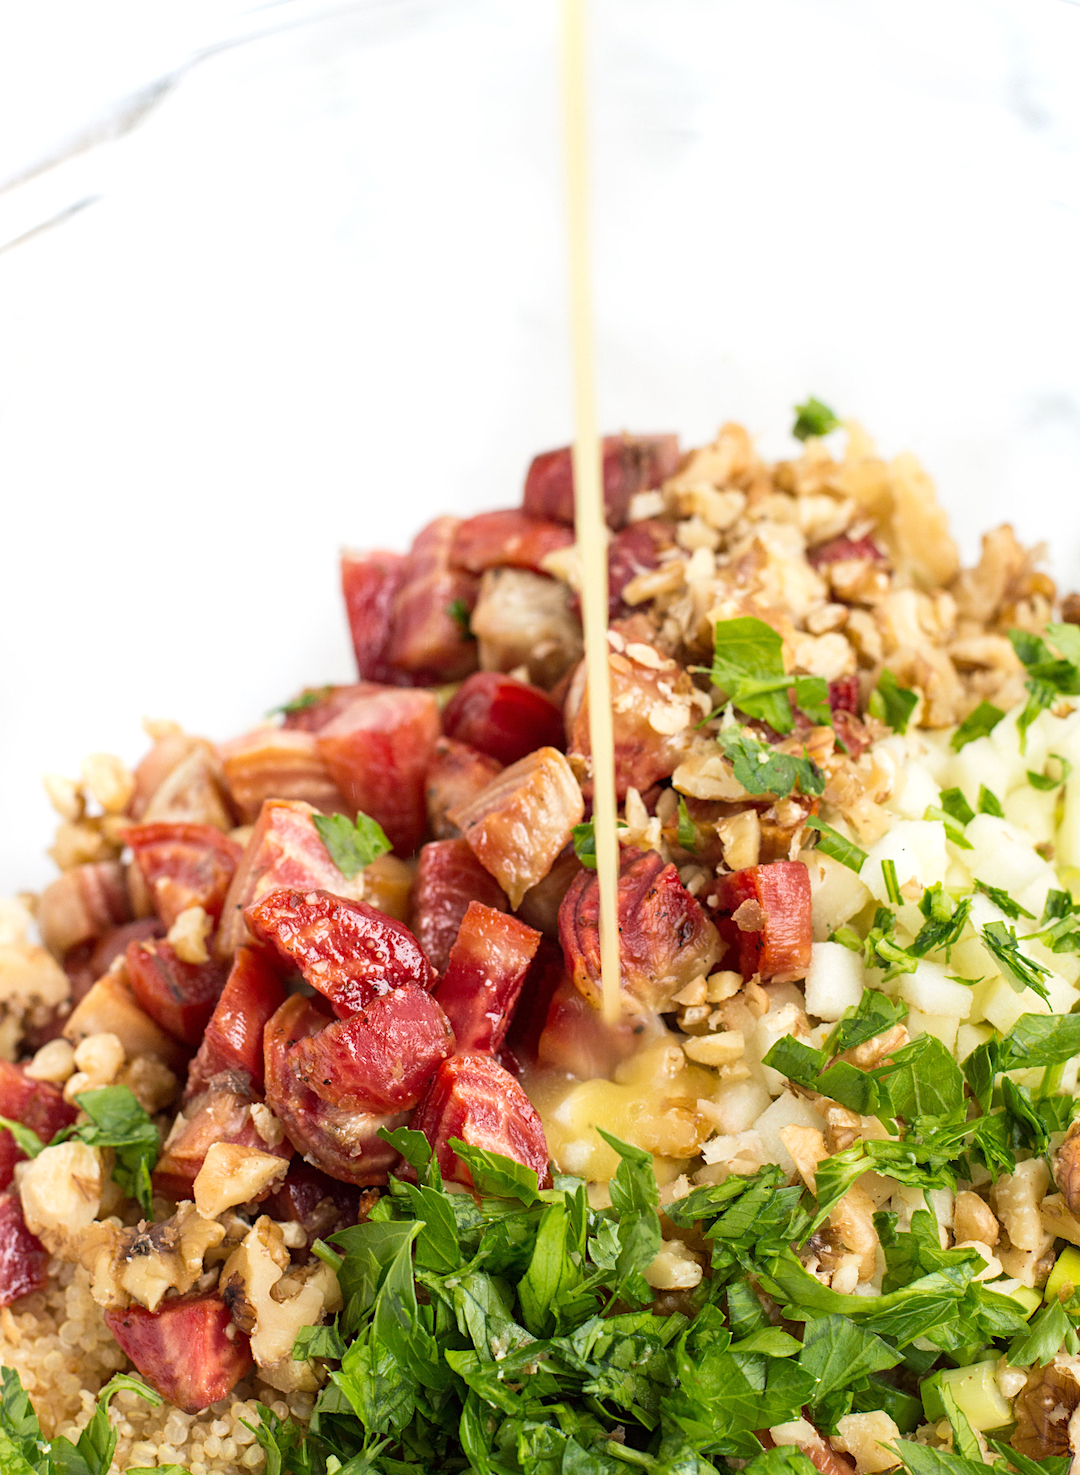 Roasted Beet and Quinoa Salad with Apple and Goat Cheese | healthy salad recipe | roasted beets | quinoa salad | gluten free, vegetarian, easy to make